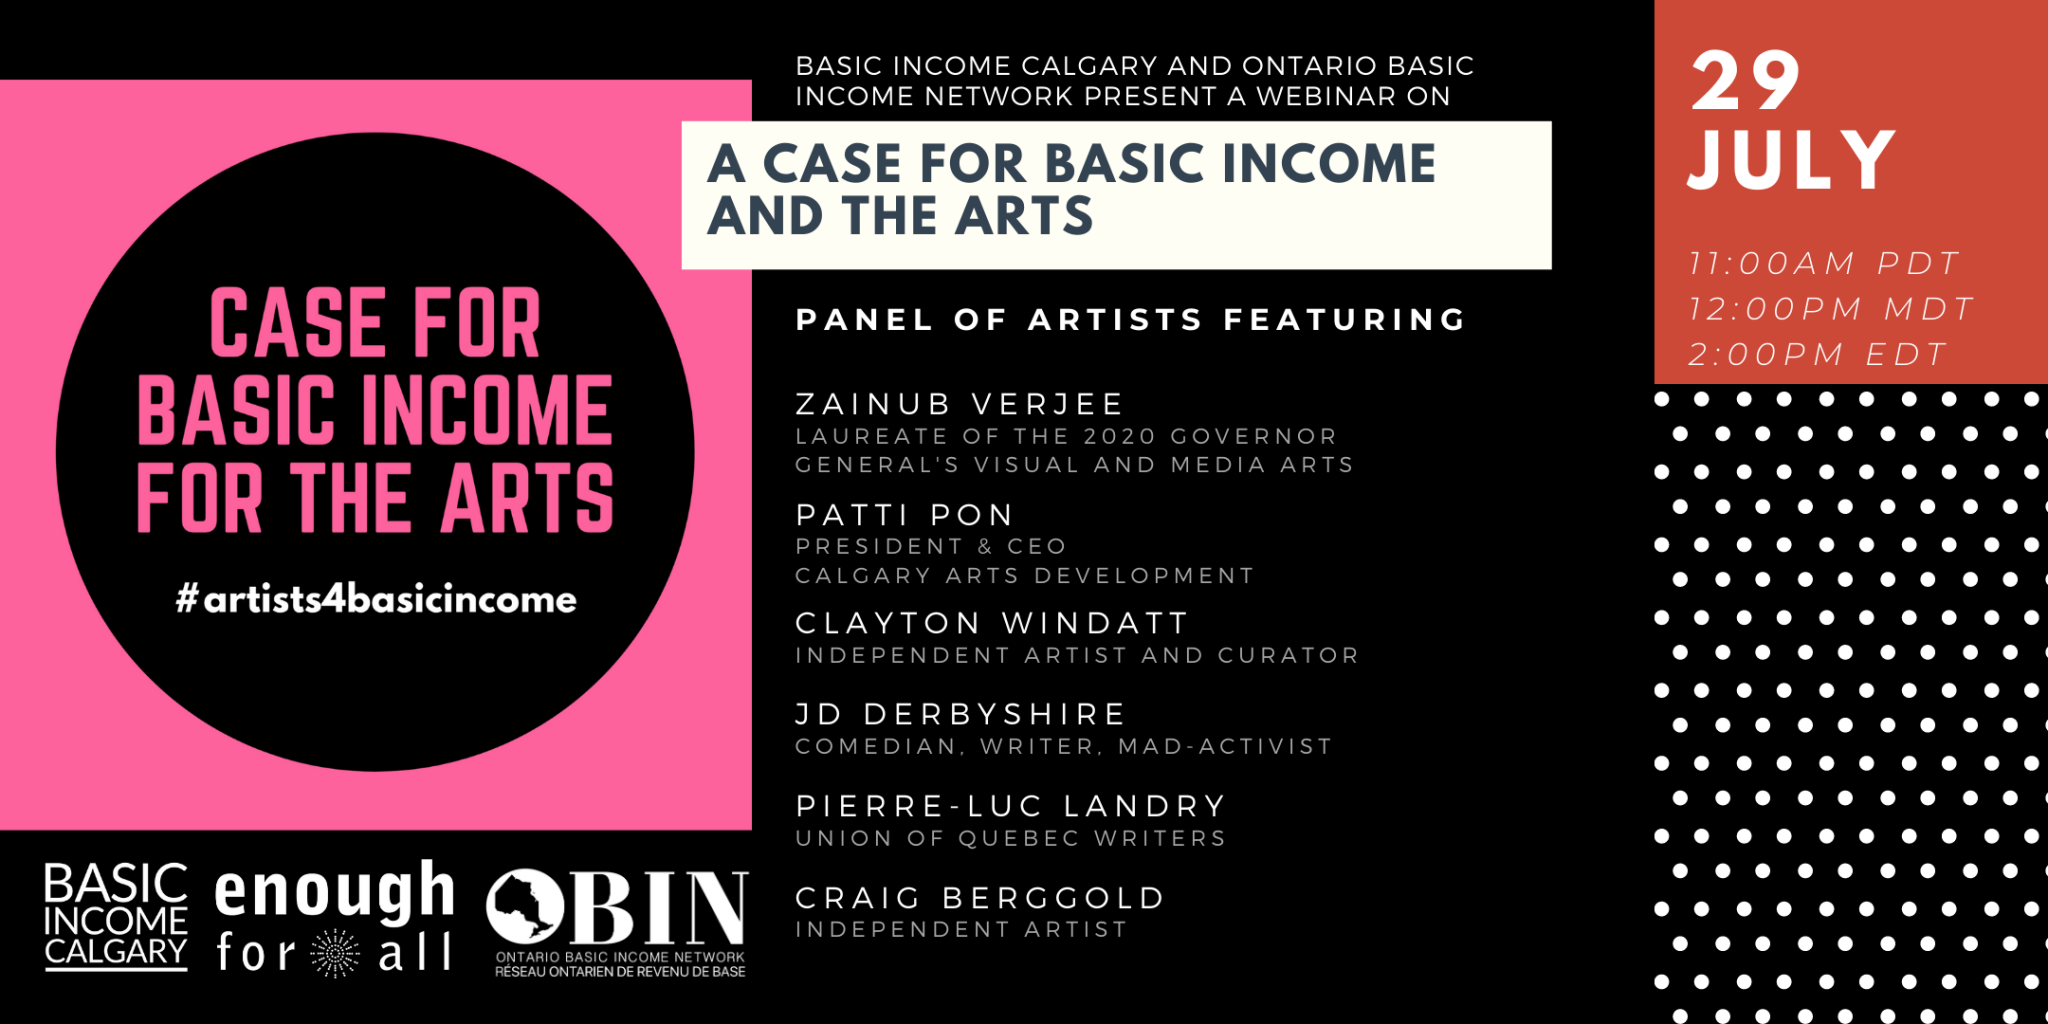 Case for Basic Income for the Arts